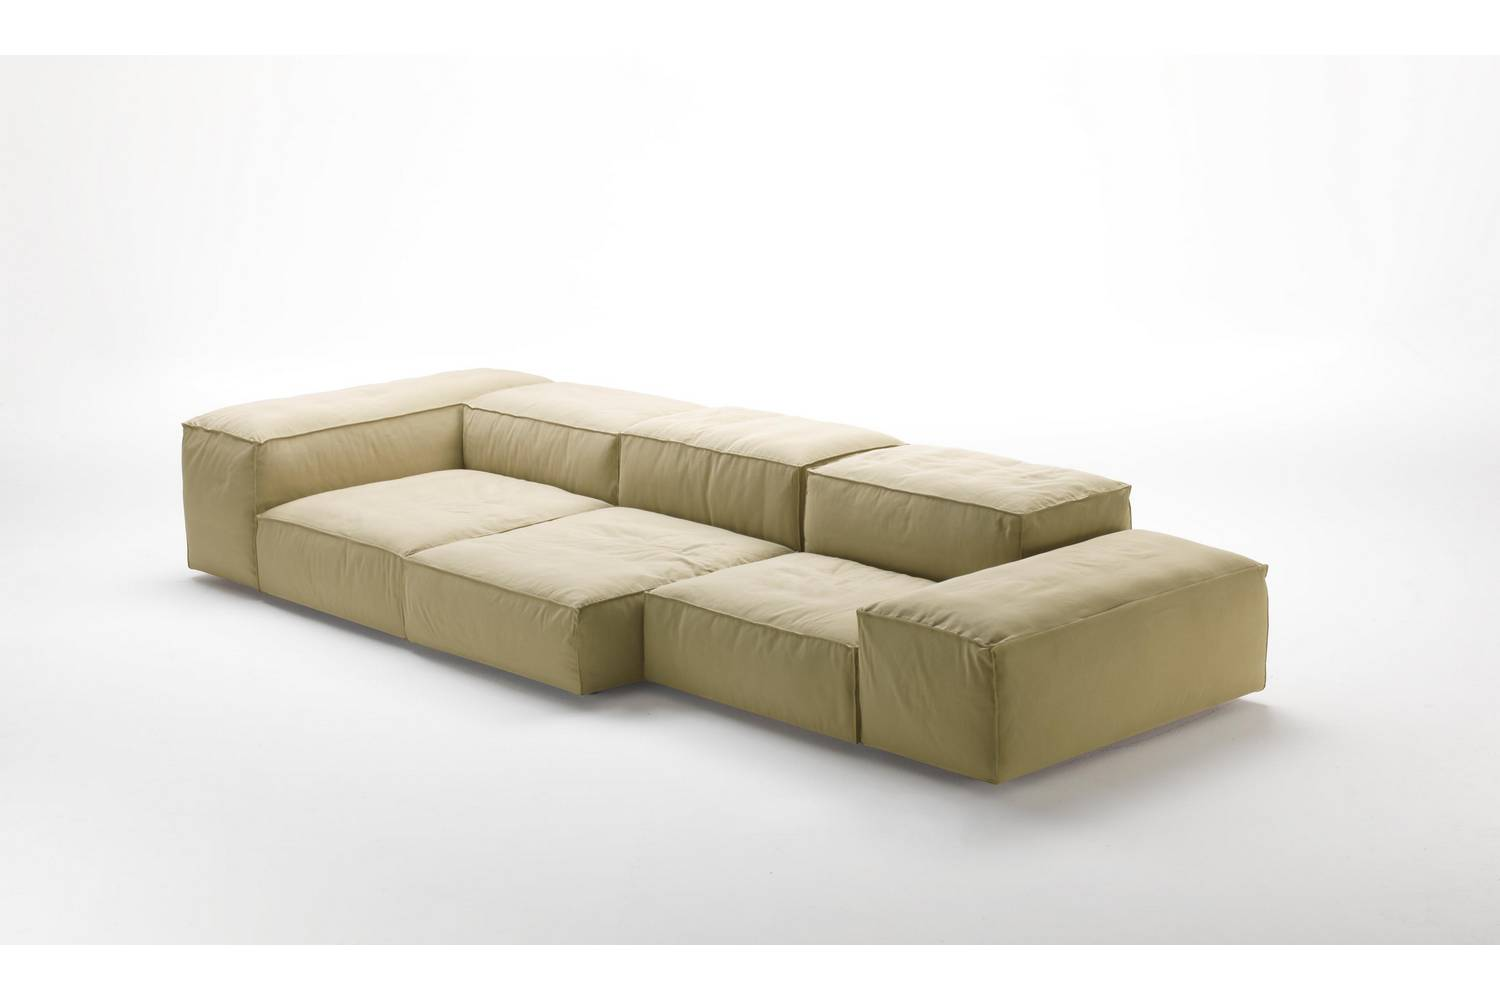 Living Divani Sectional Sofa Extrasoft Sofa By Piero Lissoni For Living Divani Space